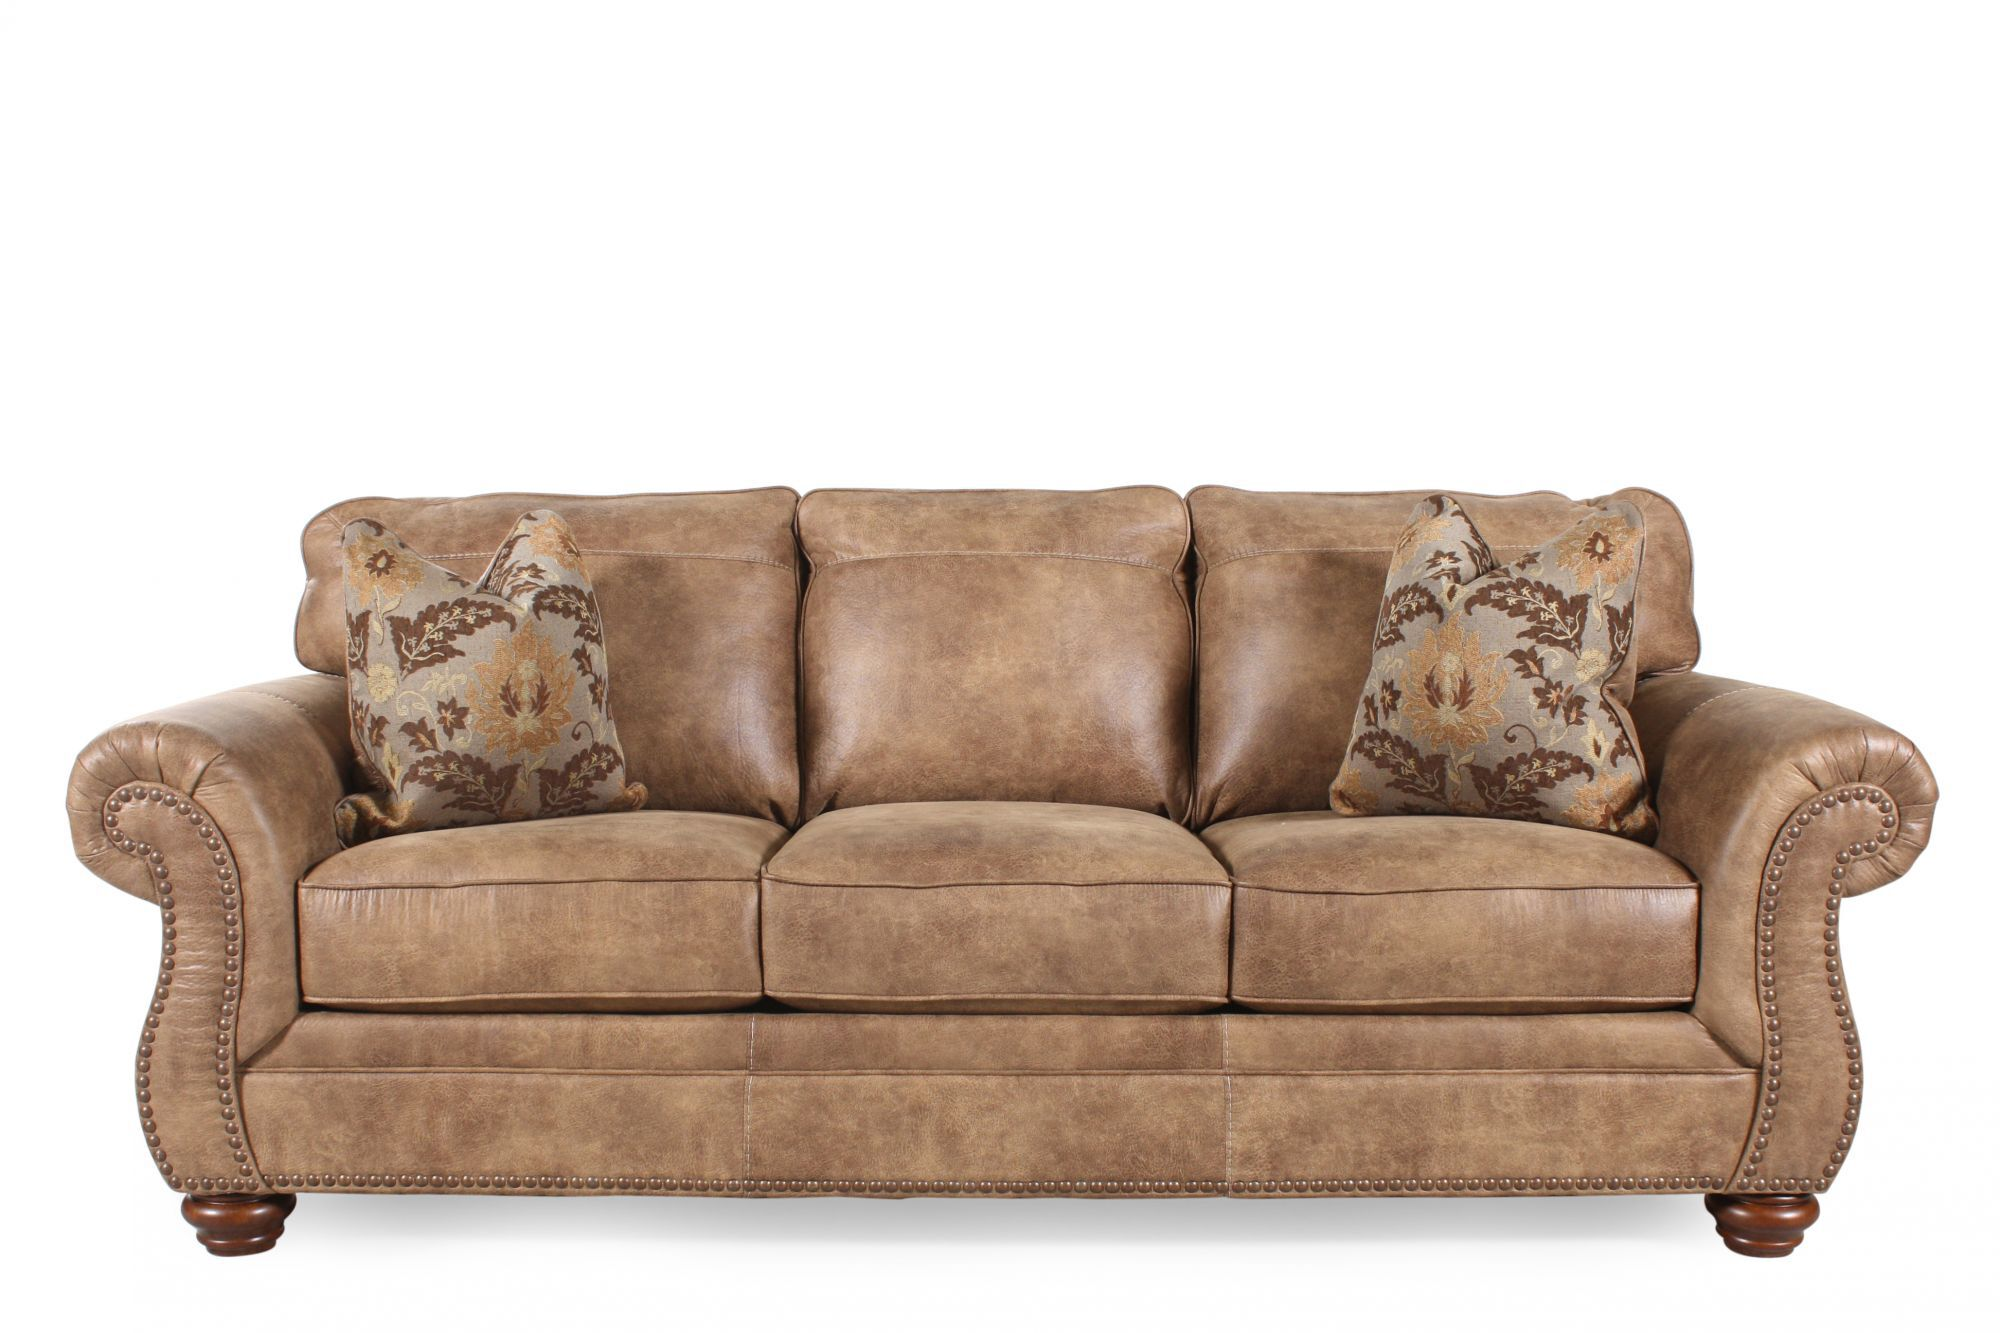 Good Images Traditional Rolled Arm 89u0026quot; Sofa In Southwestern Earth Tone  Traditional Rolled Arm 89u0026quot; Sofa In Southwestern Earth Tone